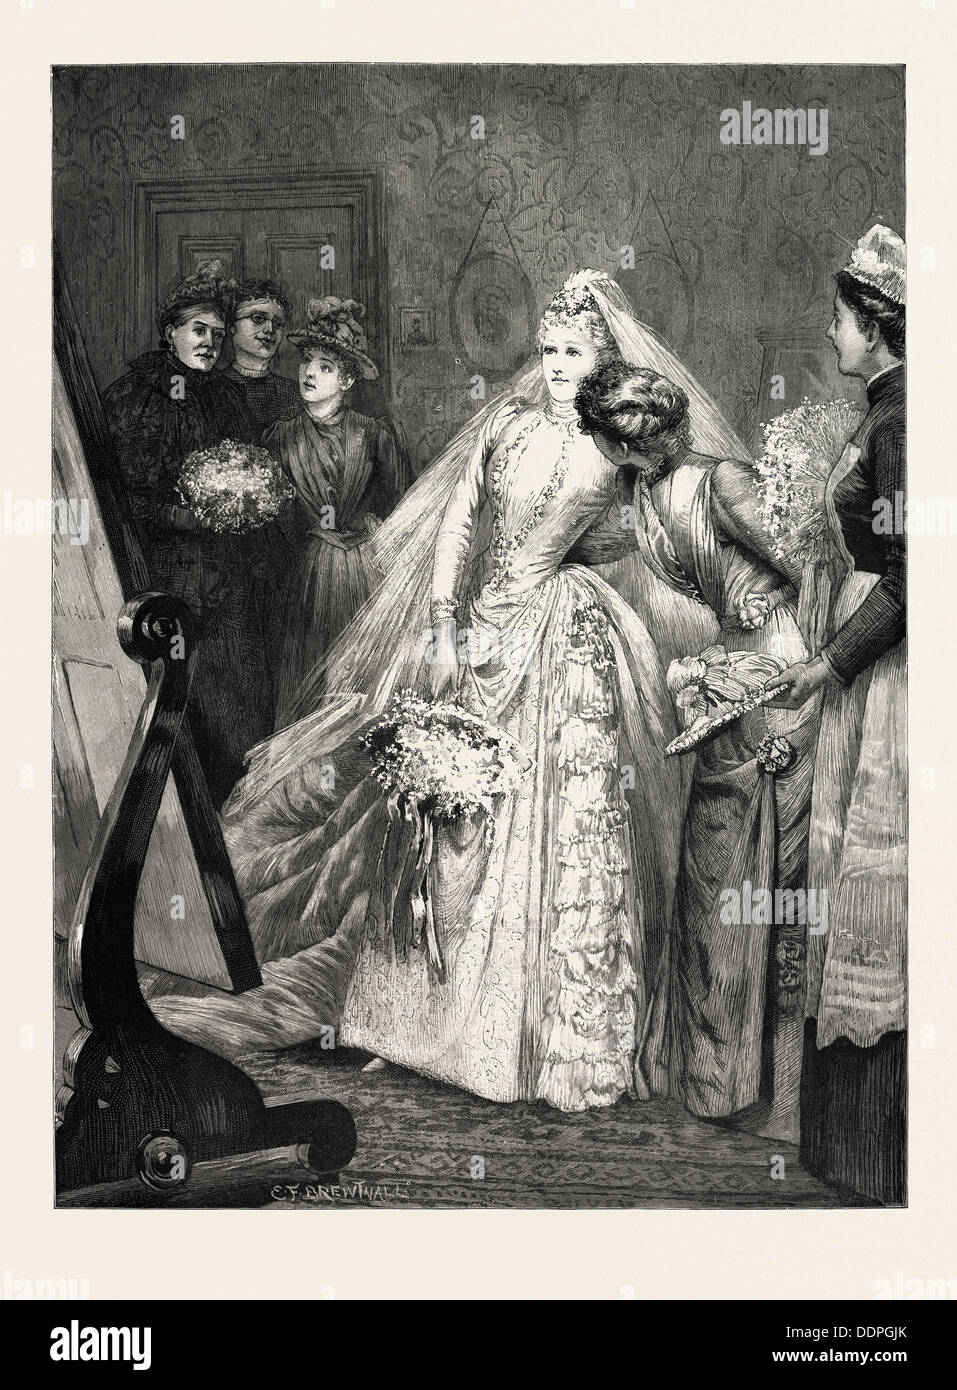 THE SUPREME MOMENT, engraving 1890, engraved image, history, arkheia, illustrative technique, engravement, engraving, victorian - Stock Image